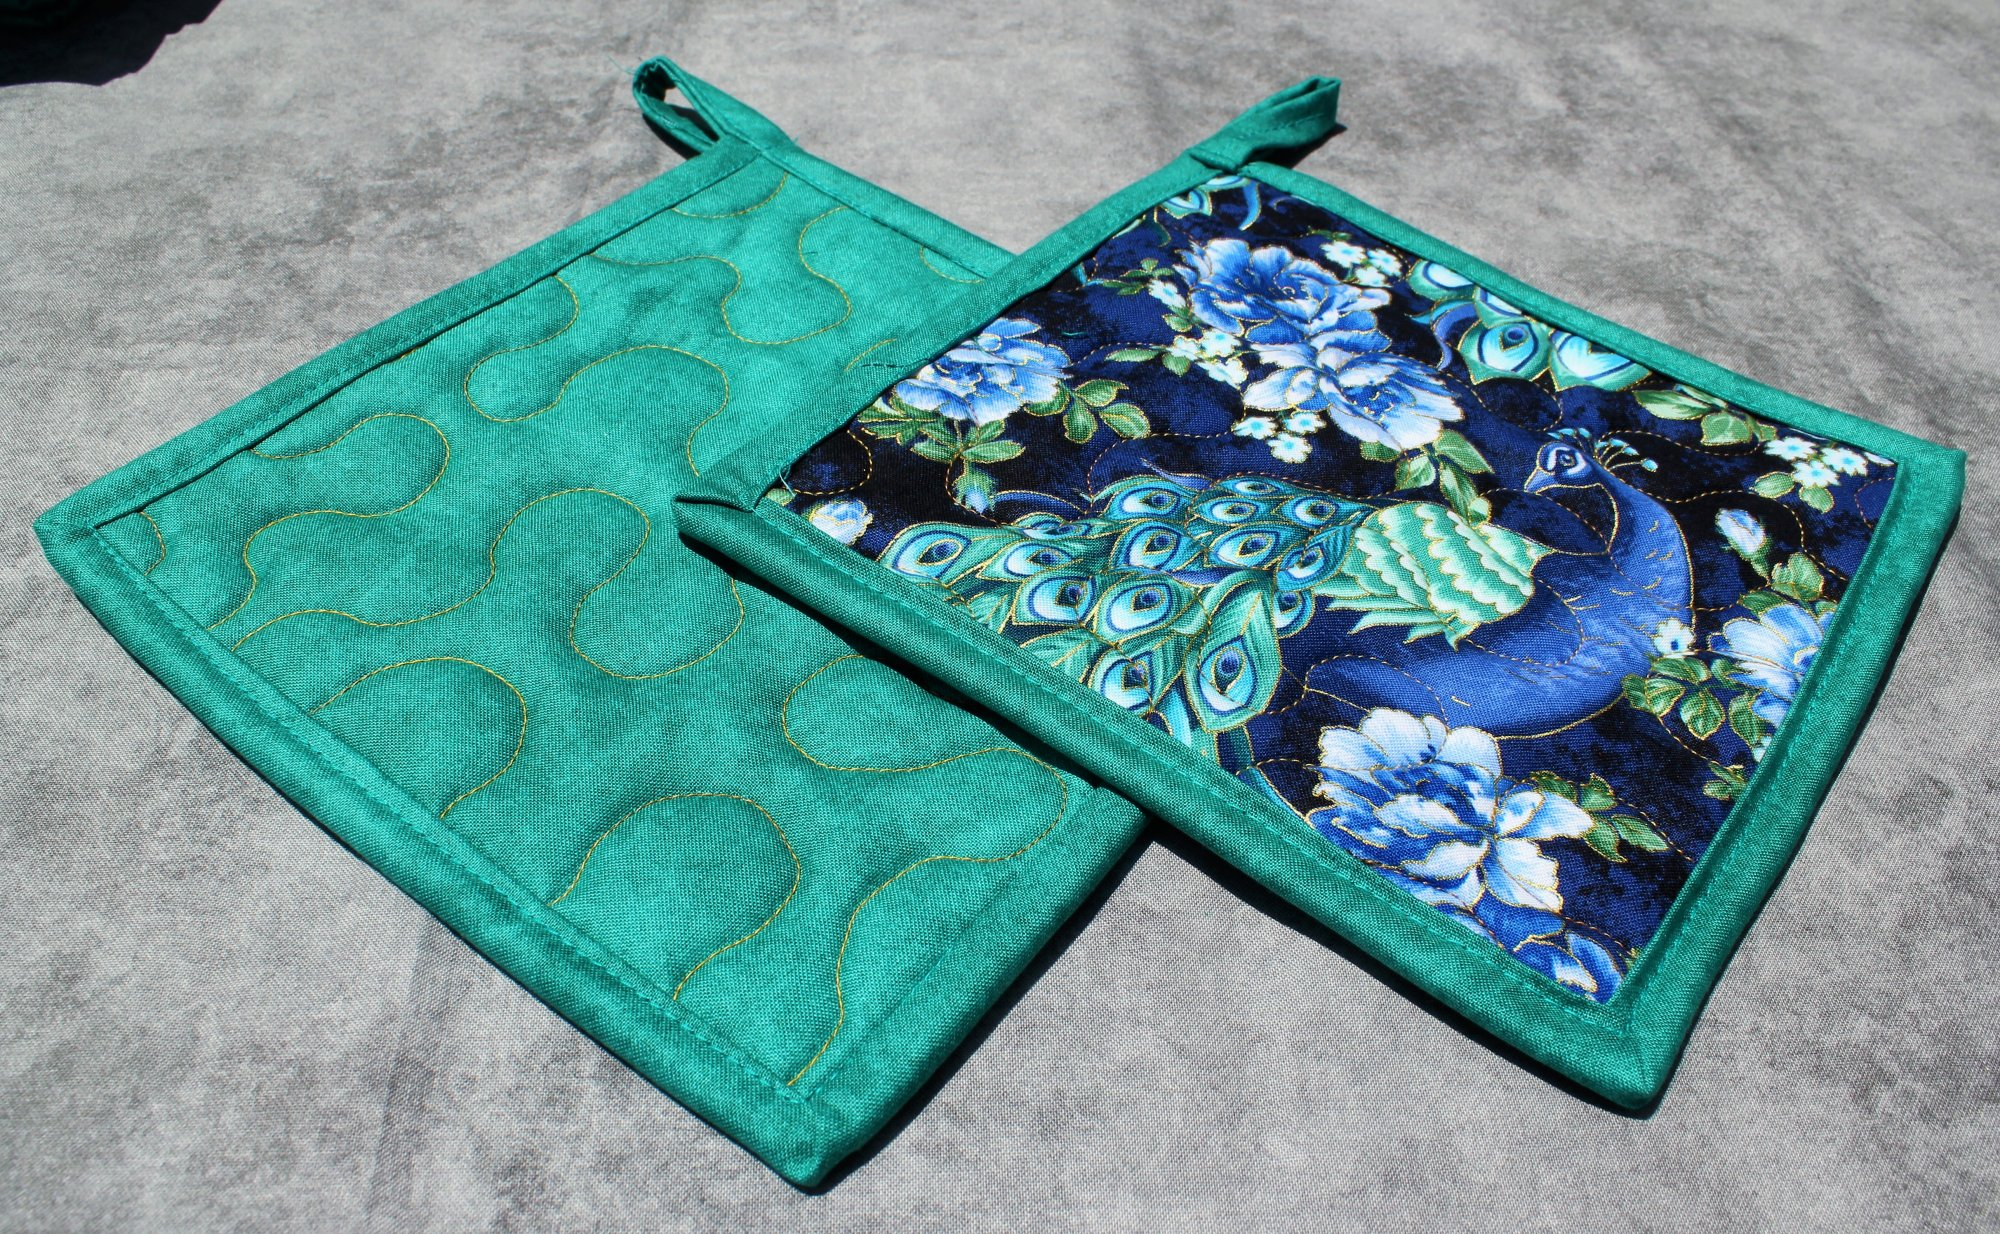 Blue/Green/Teal Peacocks and Roses Floral Potholders Set of 2